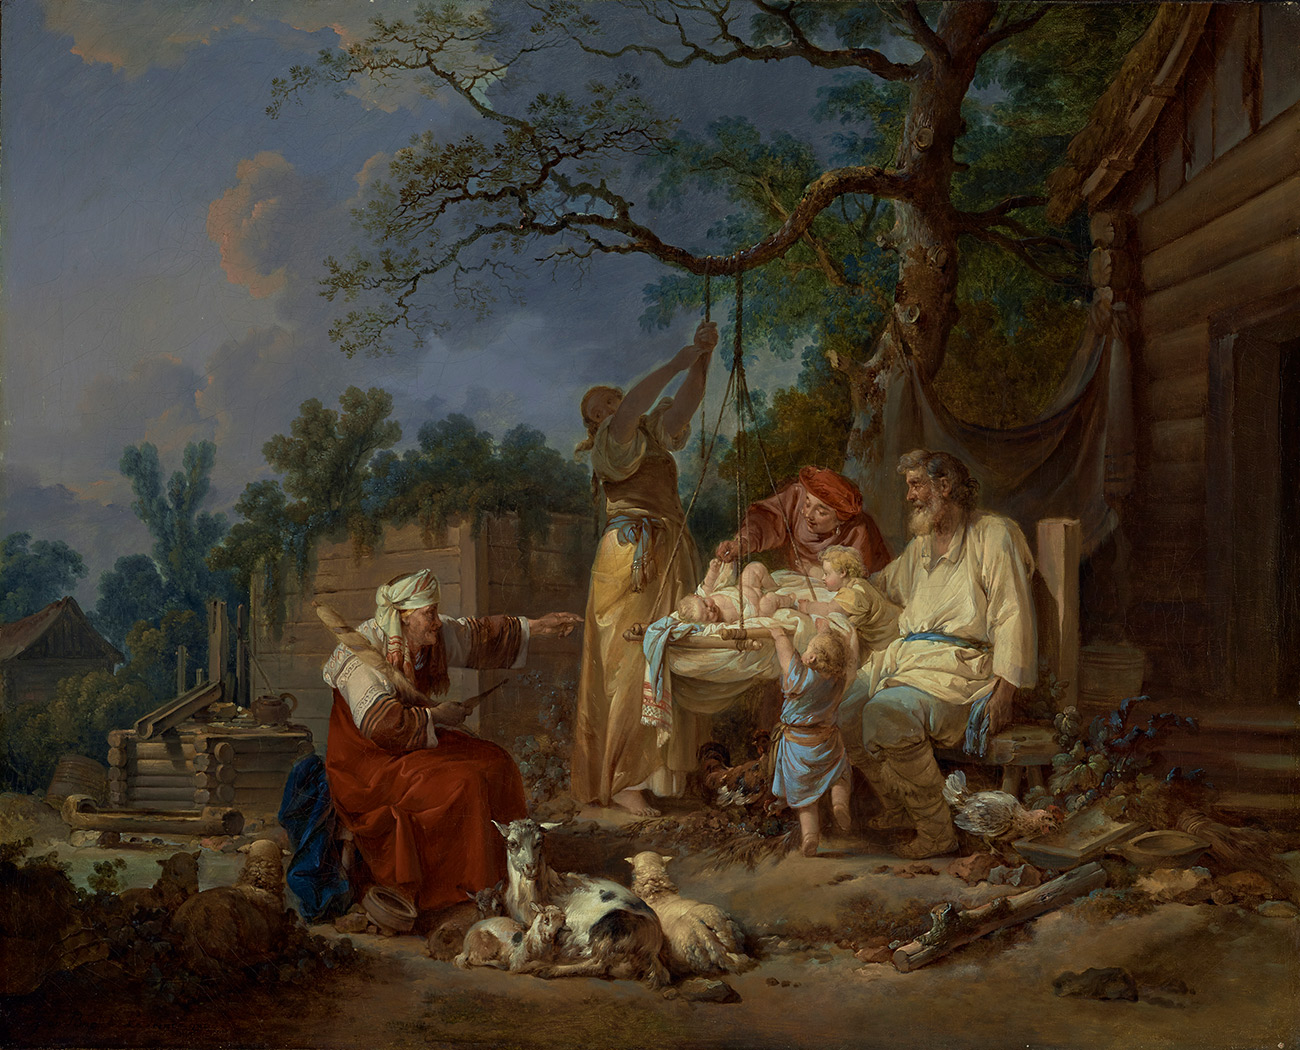 A family gathers around a baby in a cradle hanging from a tree while a woman holds the rope, and an elder woman looks on.